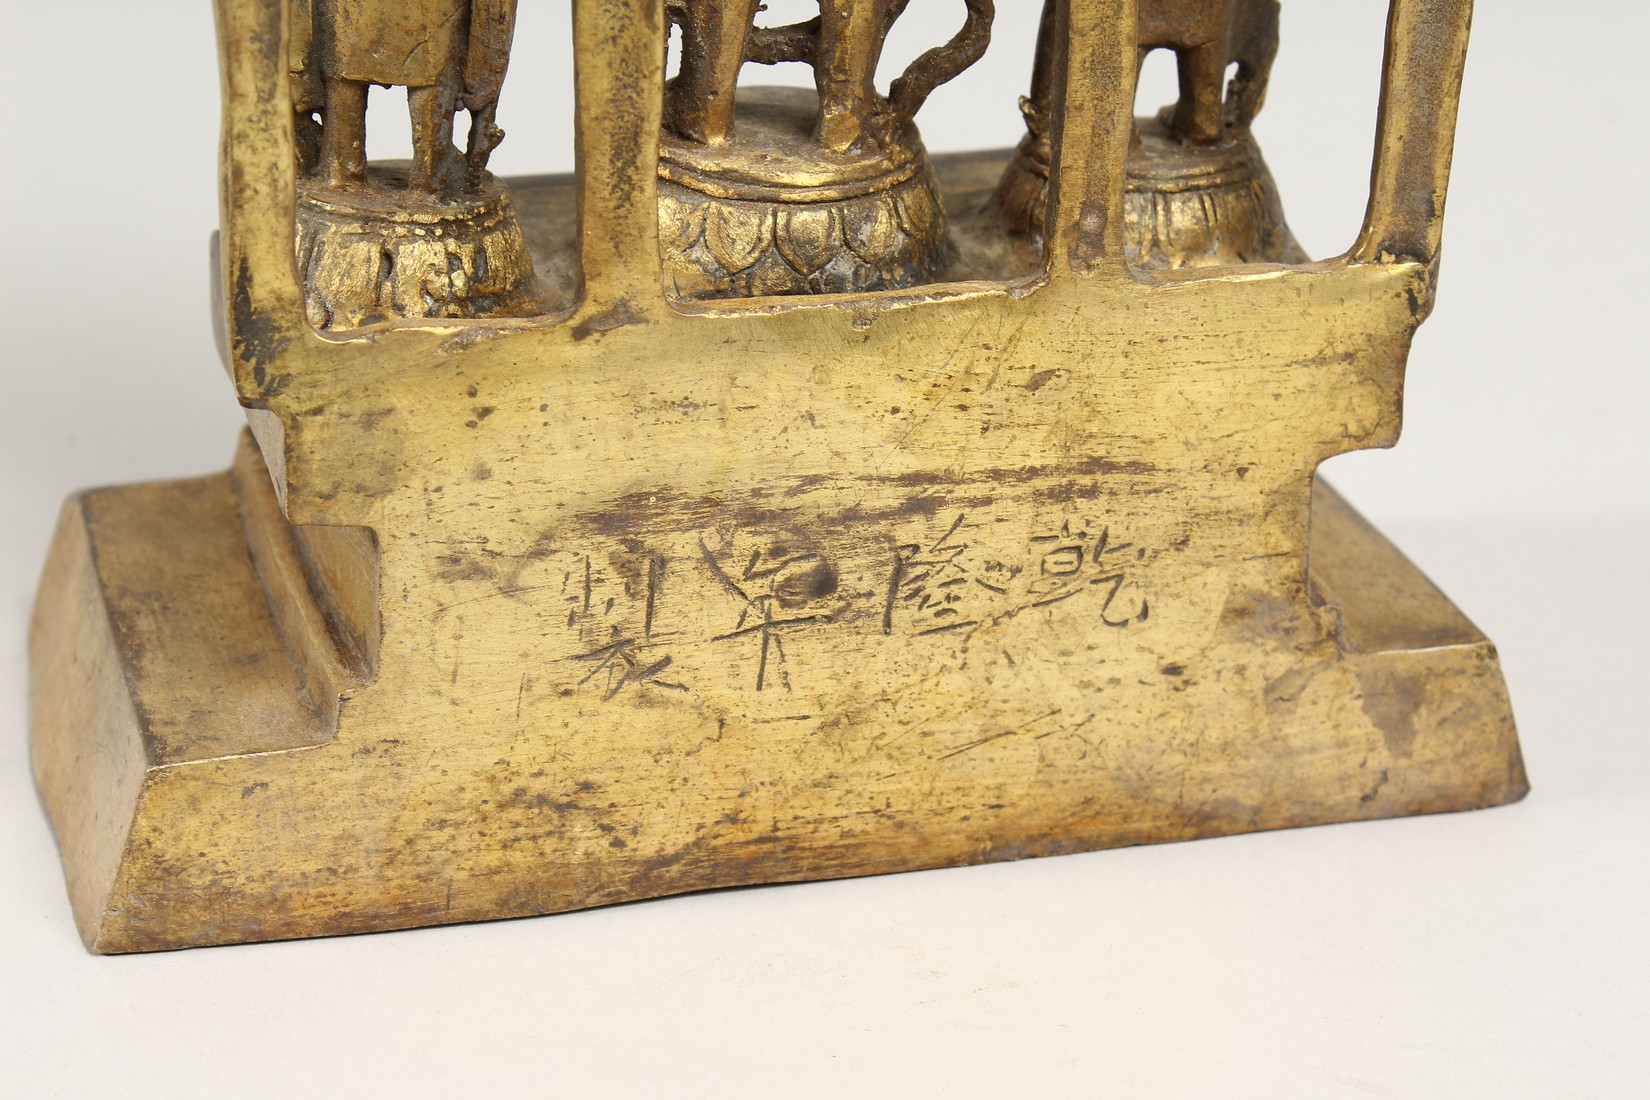 A CHINESE GILT BRONZE FIGURAL SHRINE 11ins high - Image 4 of 4